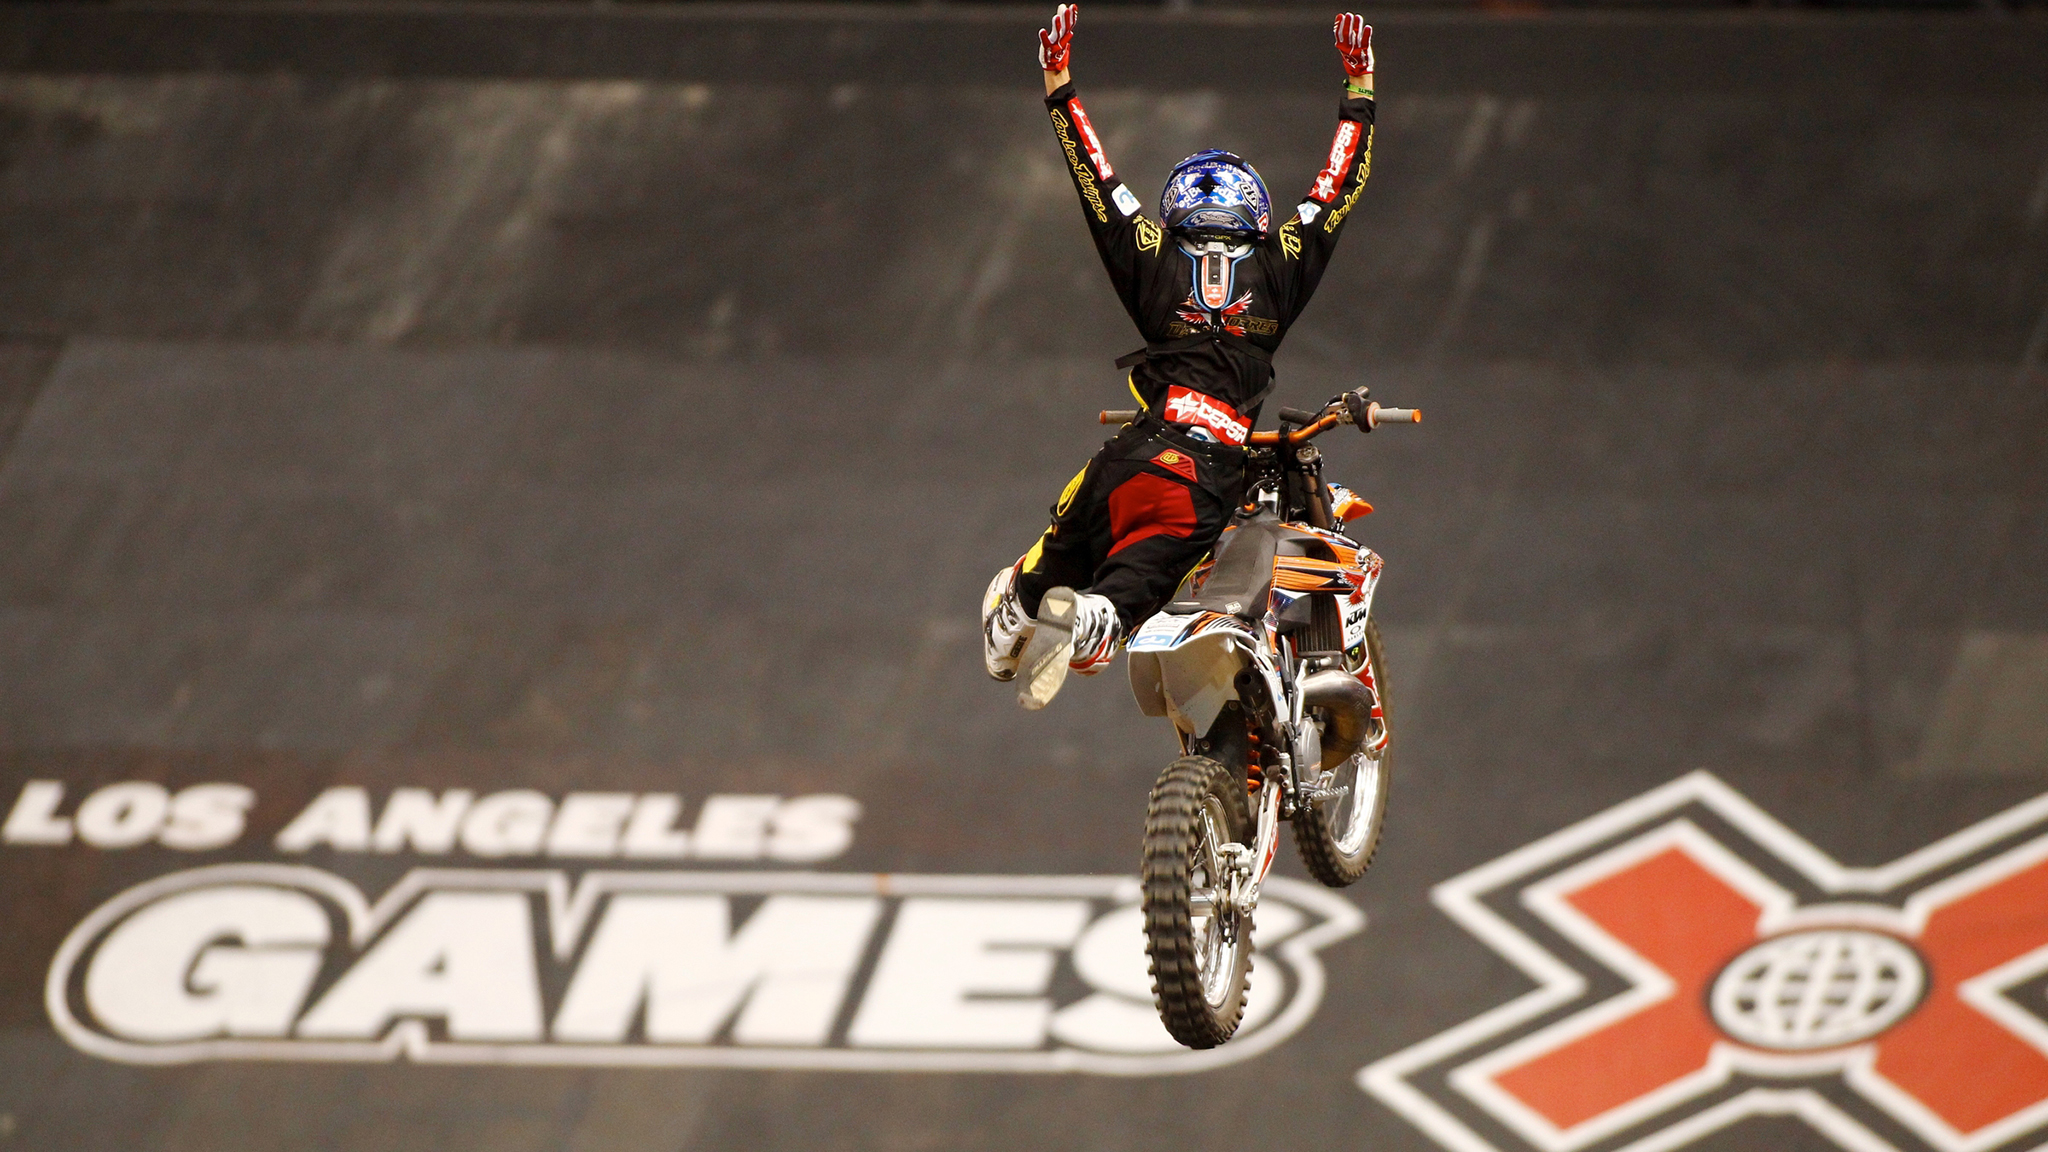 X games potential host cities for 2014 x games voltagebd Image collections